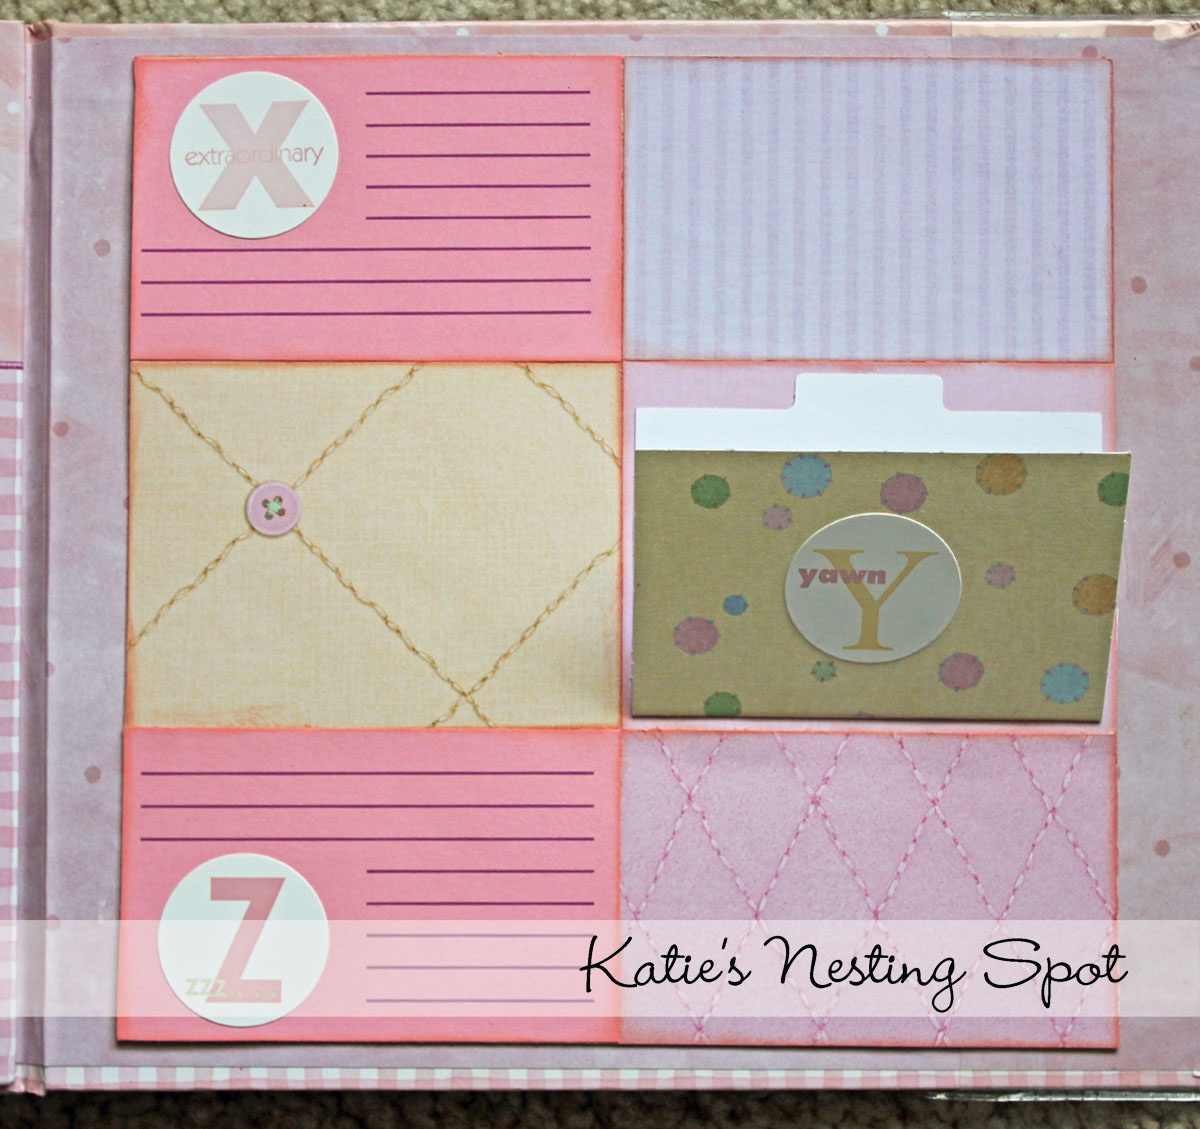 Abc scrapbook ideas list - For The Last Page I Fit The Last Three Letters But If Doing It Again I Think Move Letter Z To The Back Cover To Make The Photo Spaces Larger